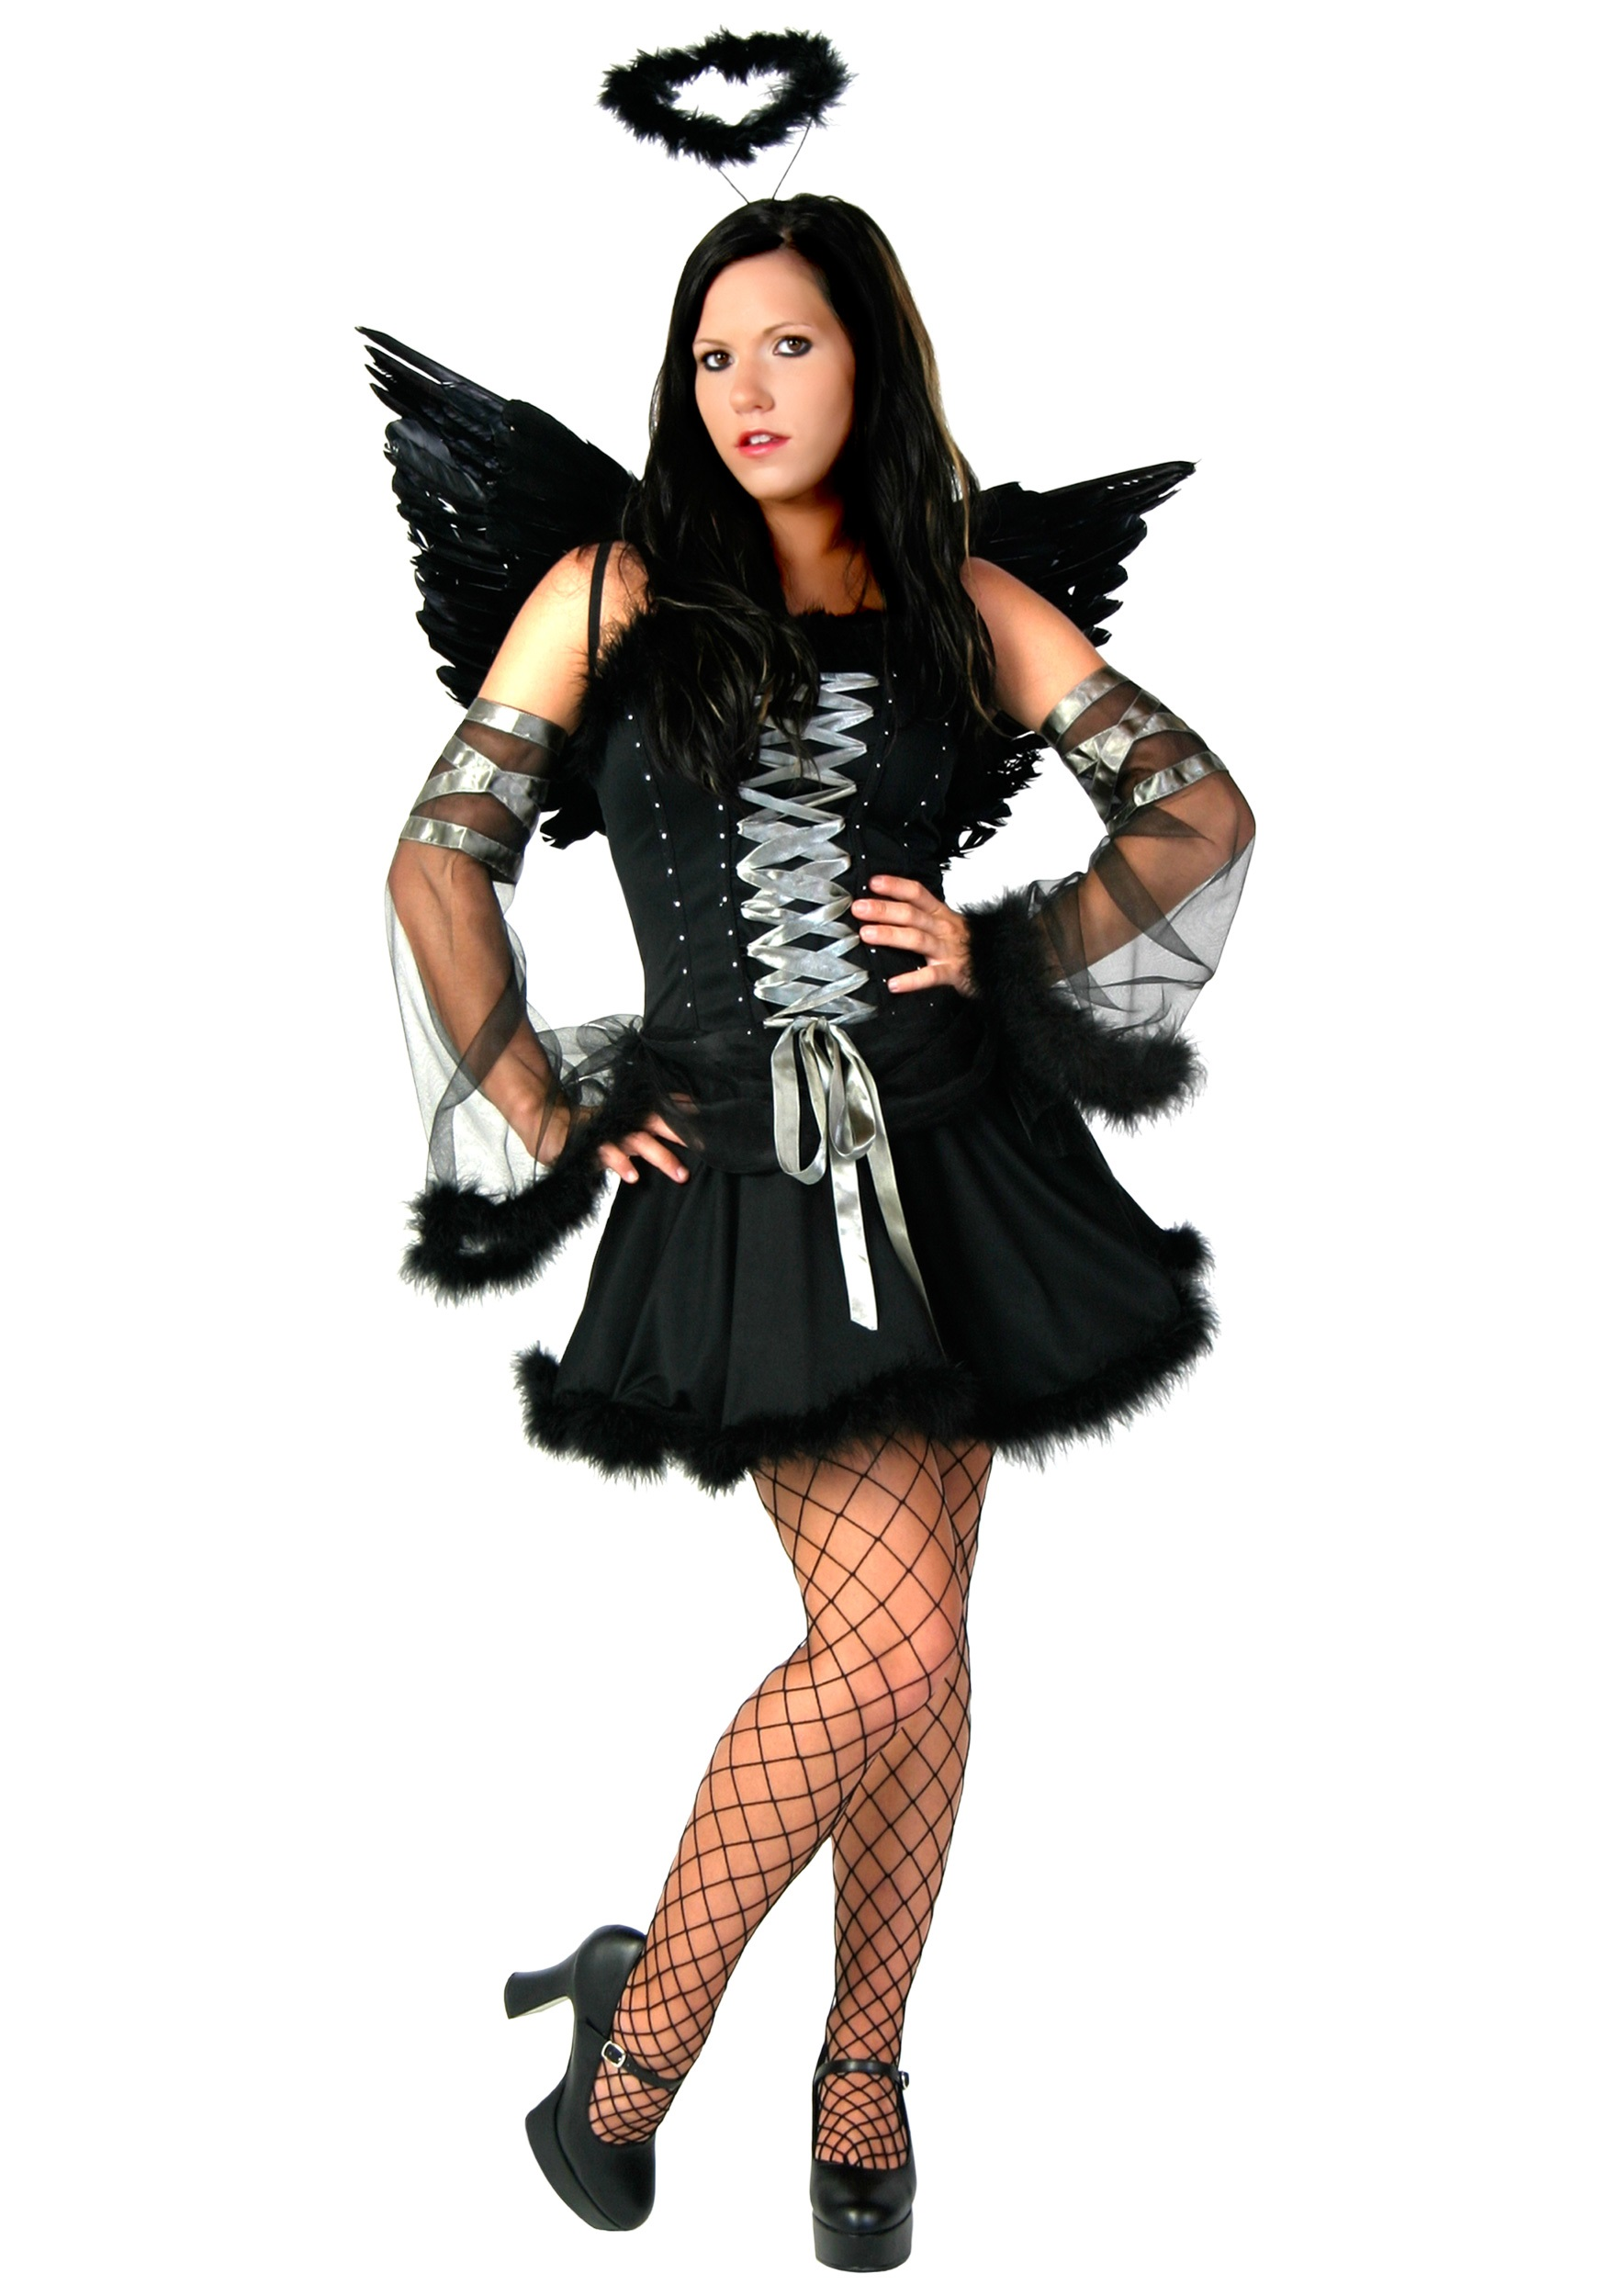 dark angel costume halloween costume ideas 2016. Black Bedroom Furniture Sets. Home Design Ideas